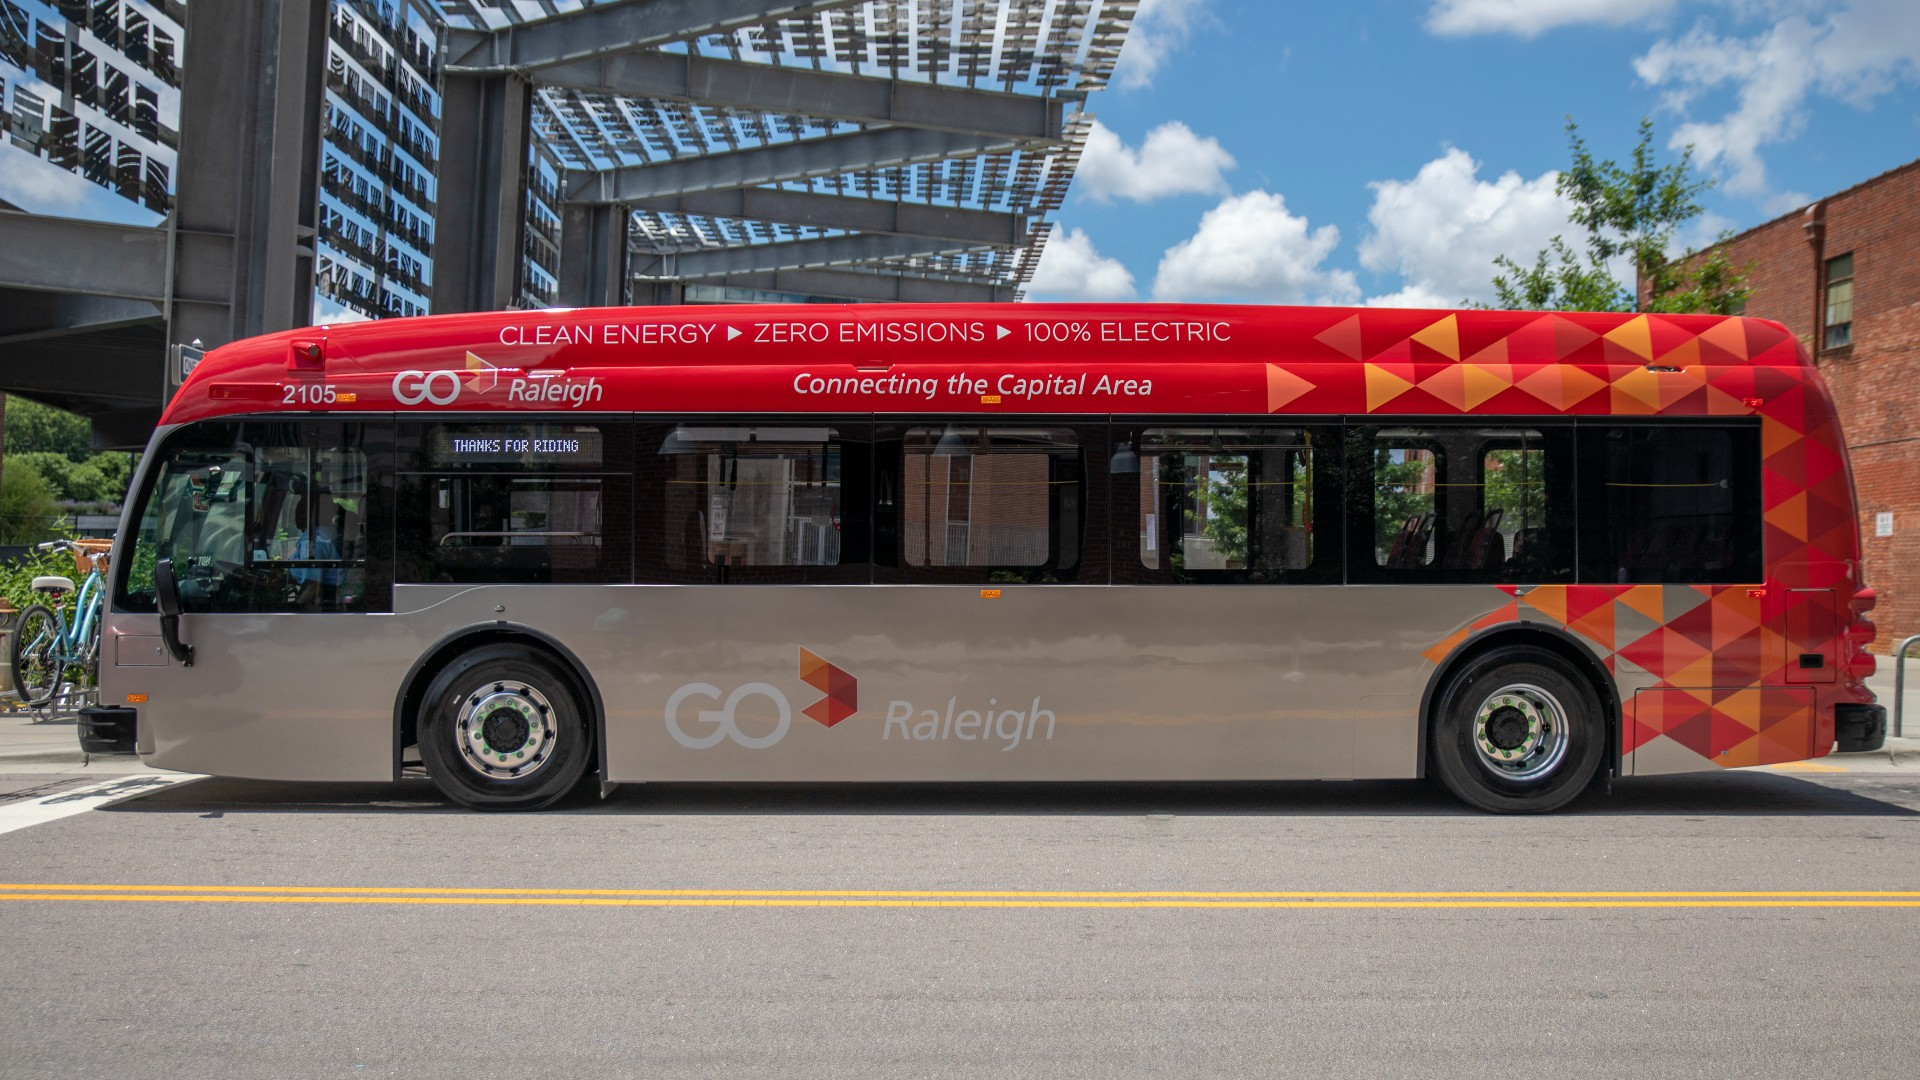 GoRaleigh Bus at Raleigh Union Station